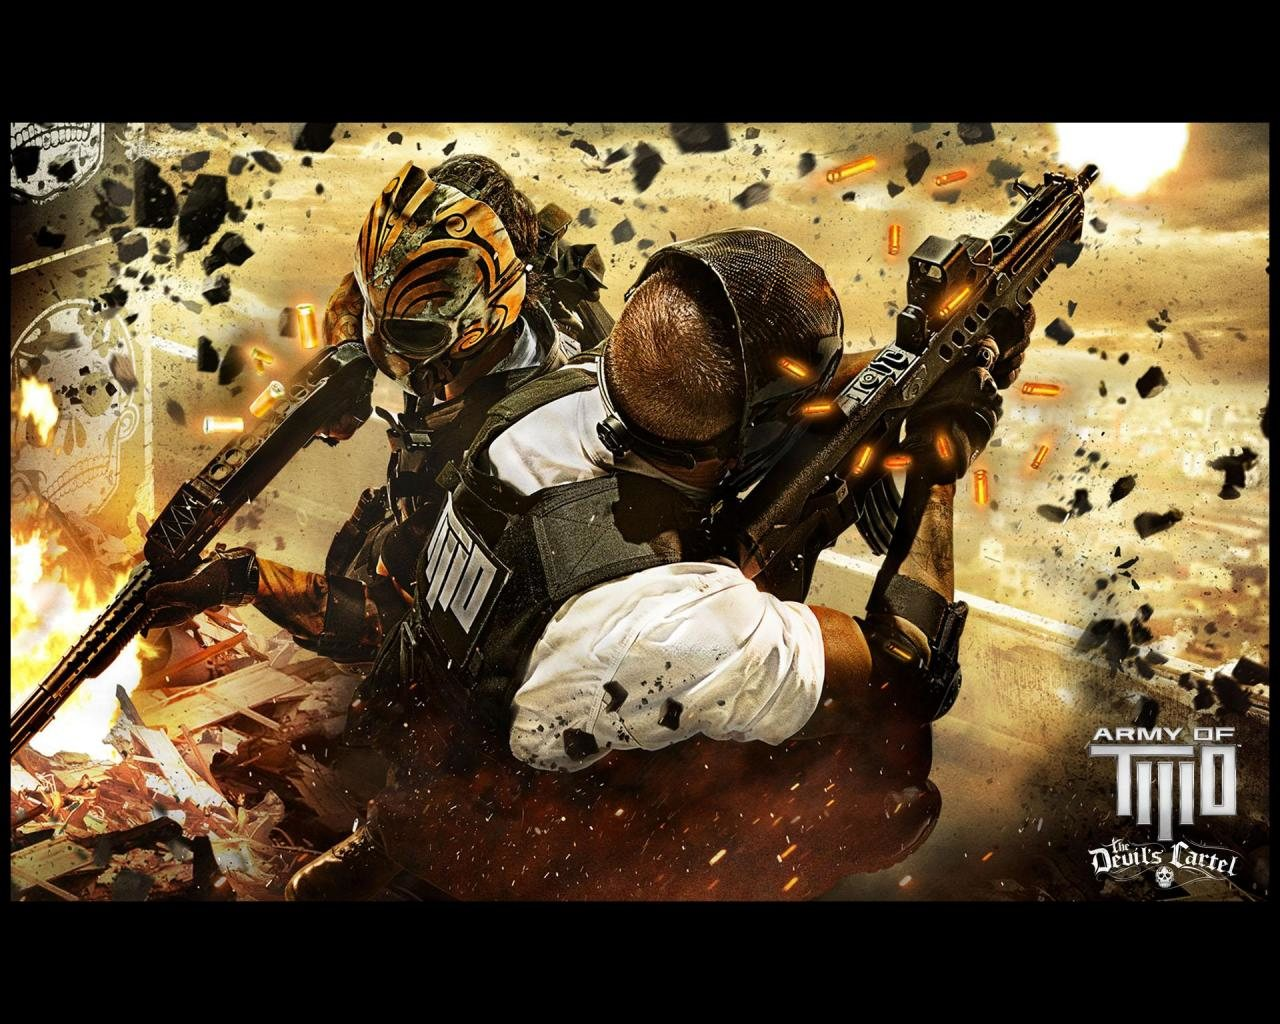 Army of Two: The Devil's Cartel (Trailers)